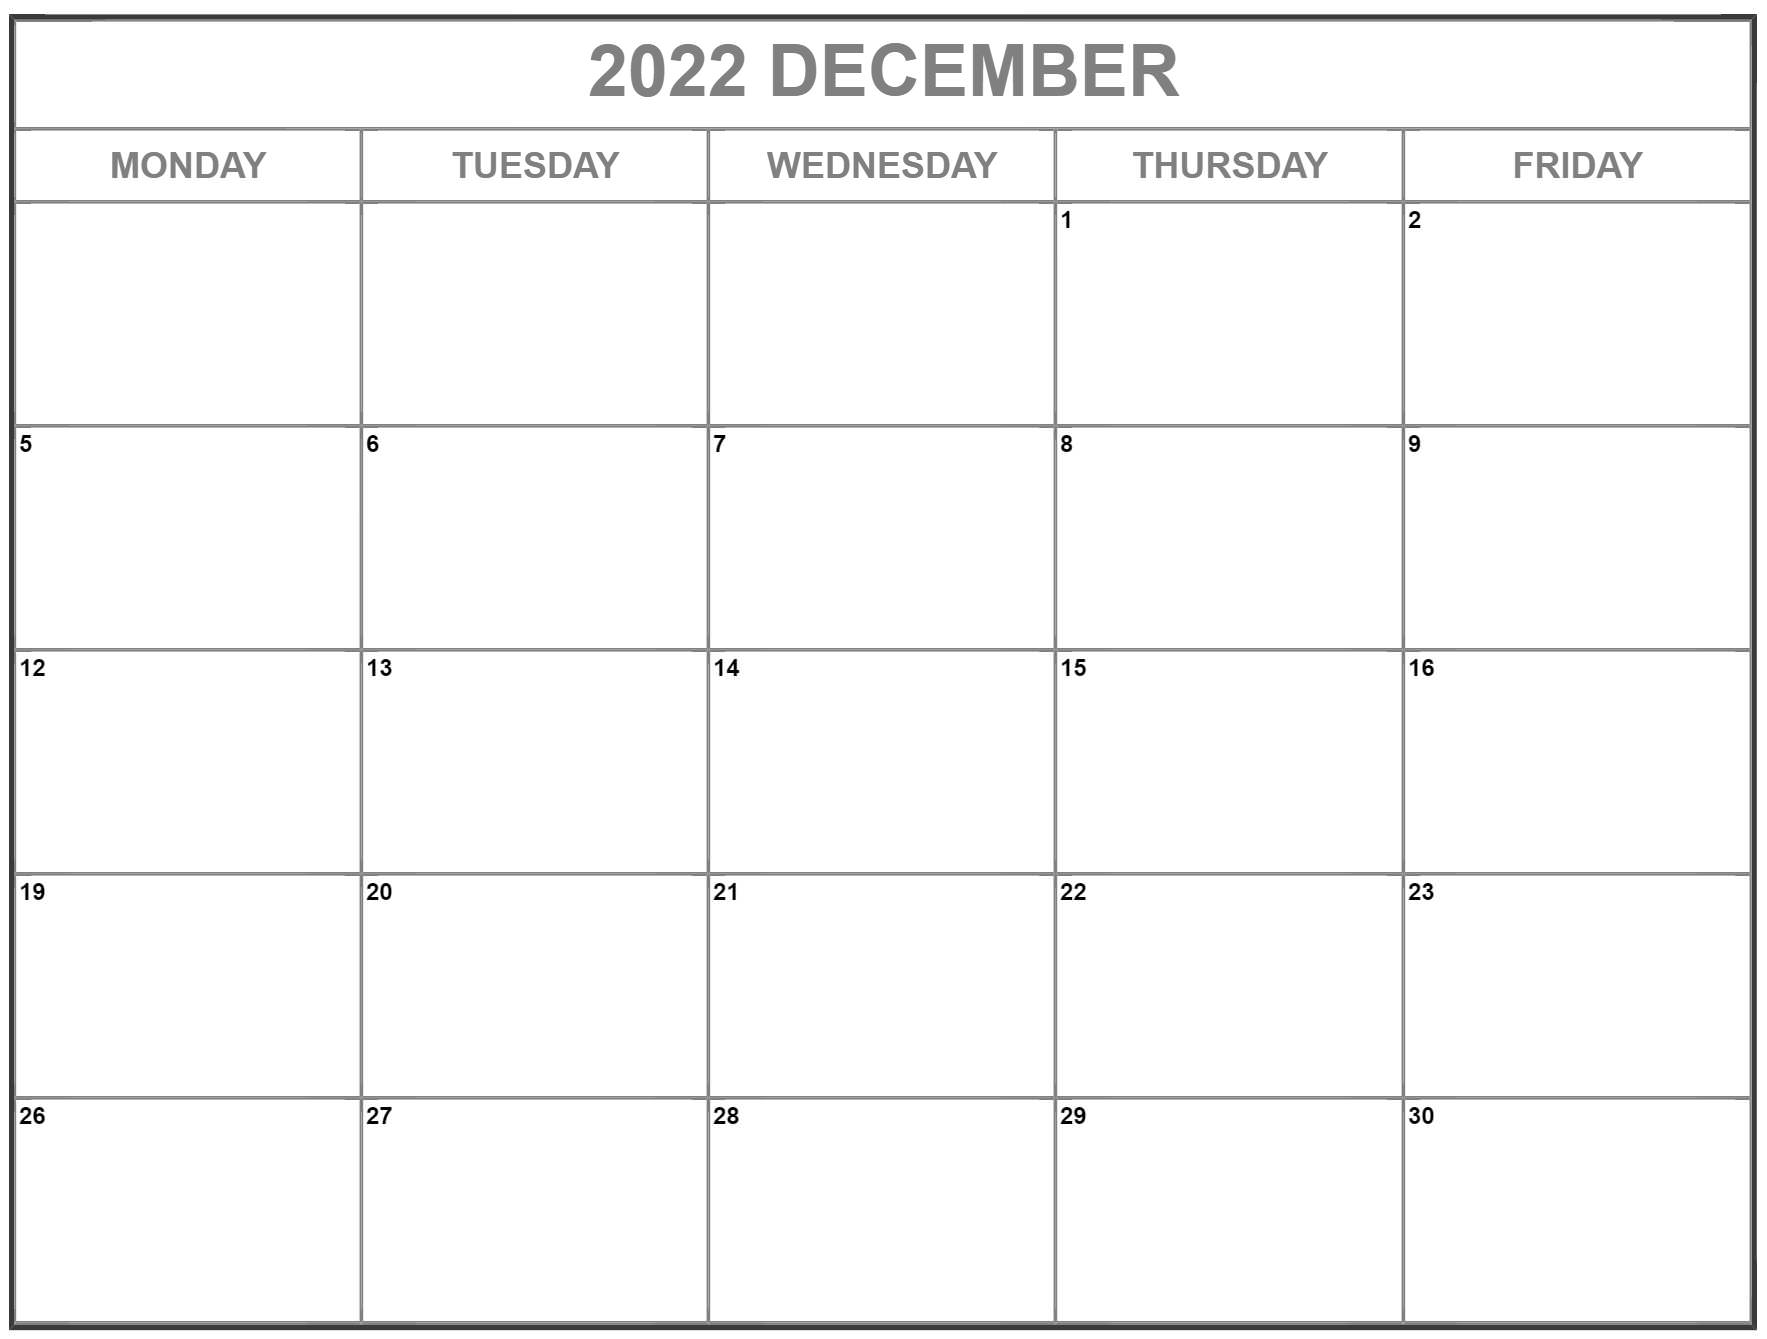 December 2022 Monday through Friday calendar.